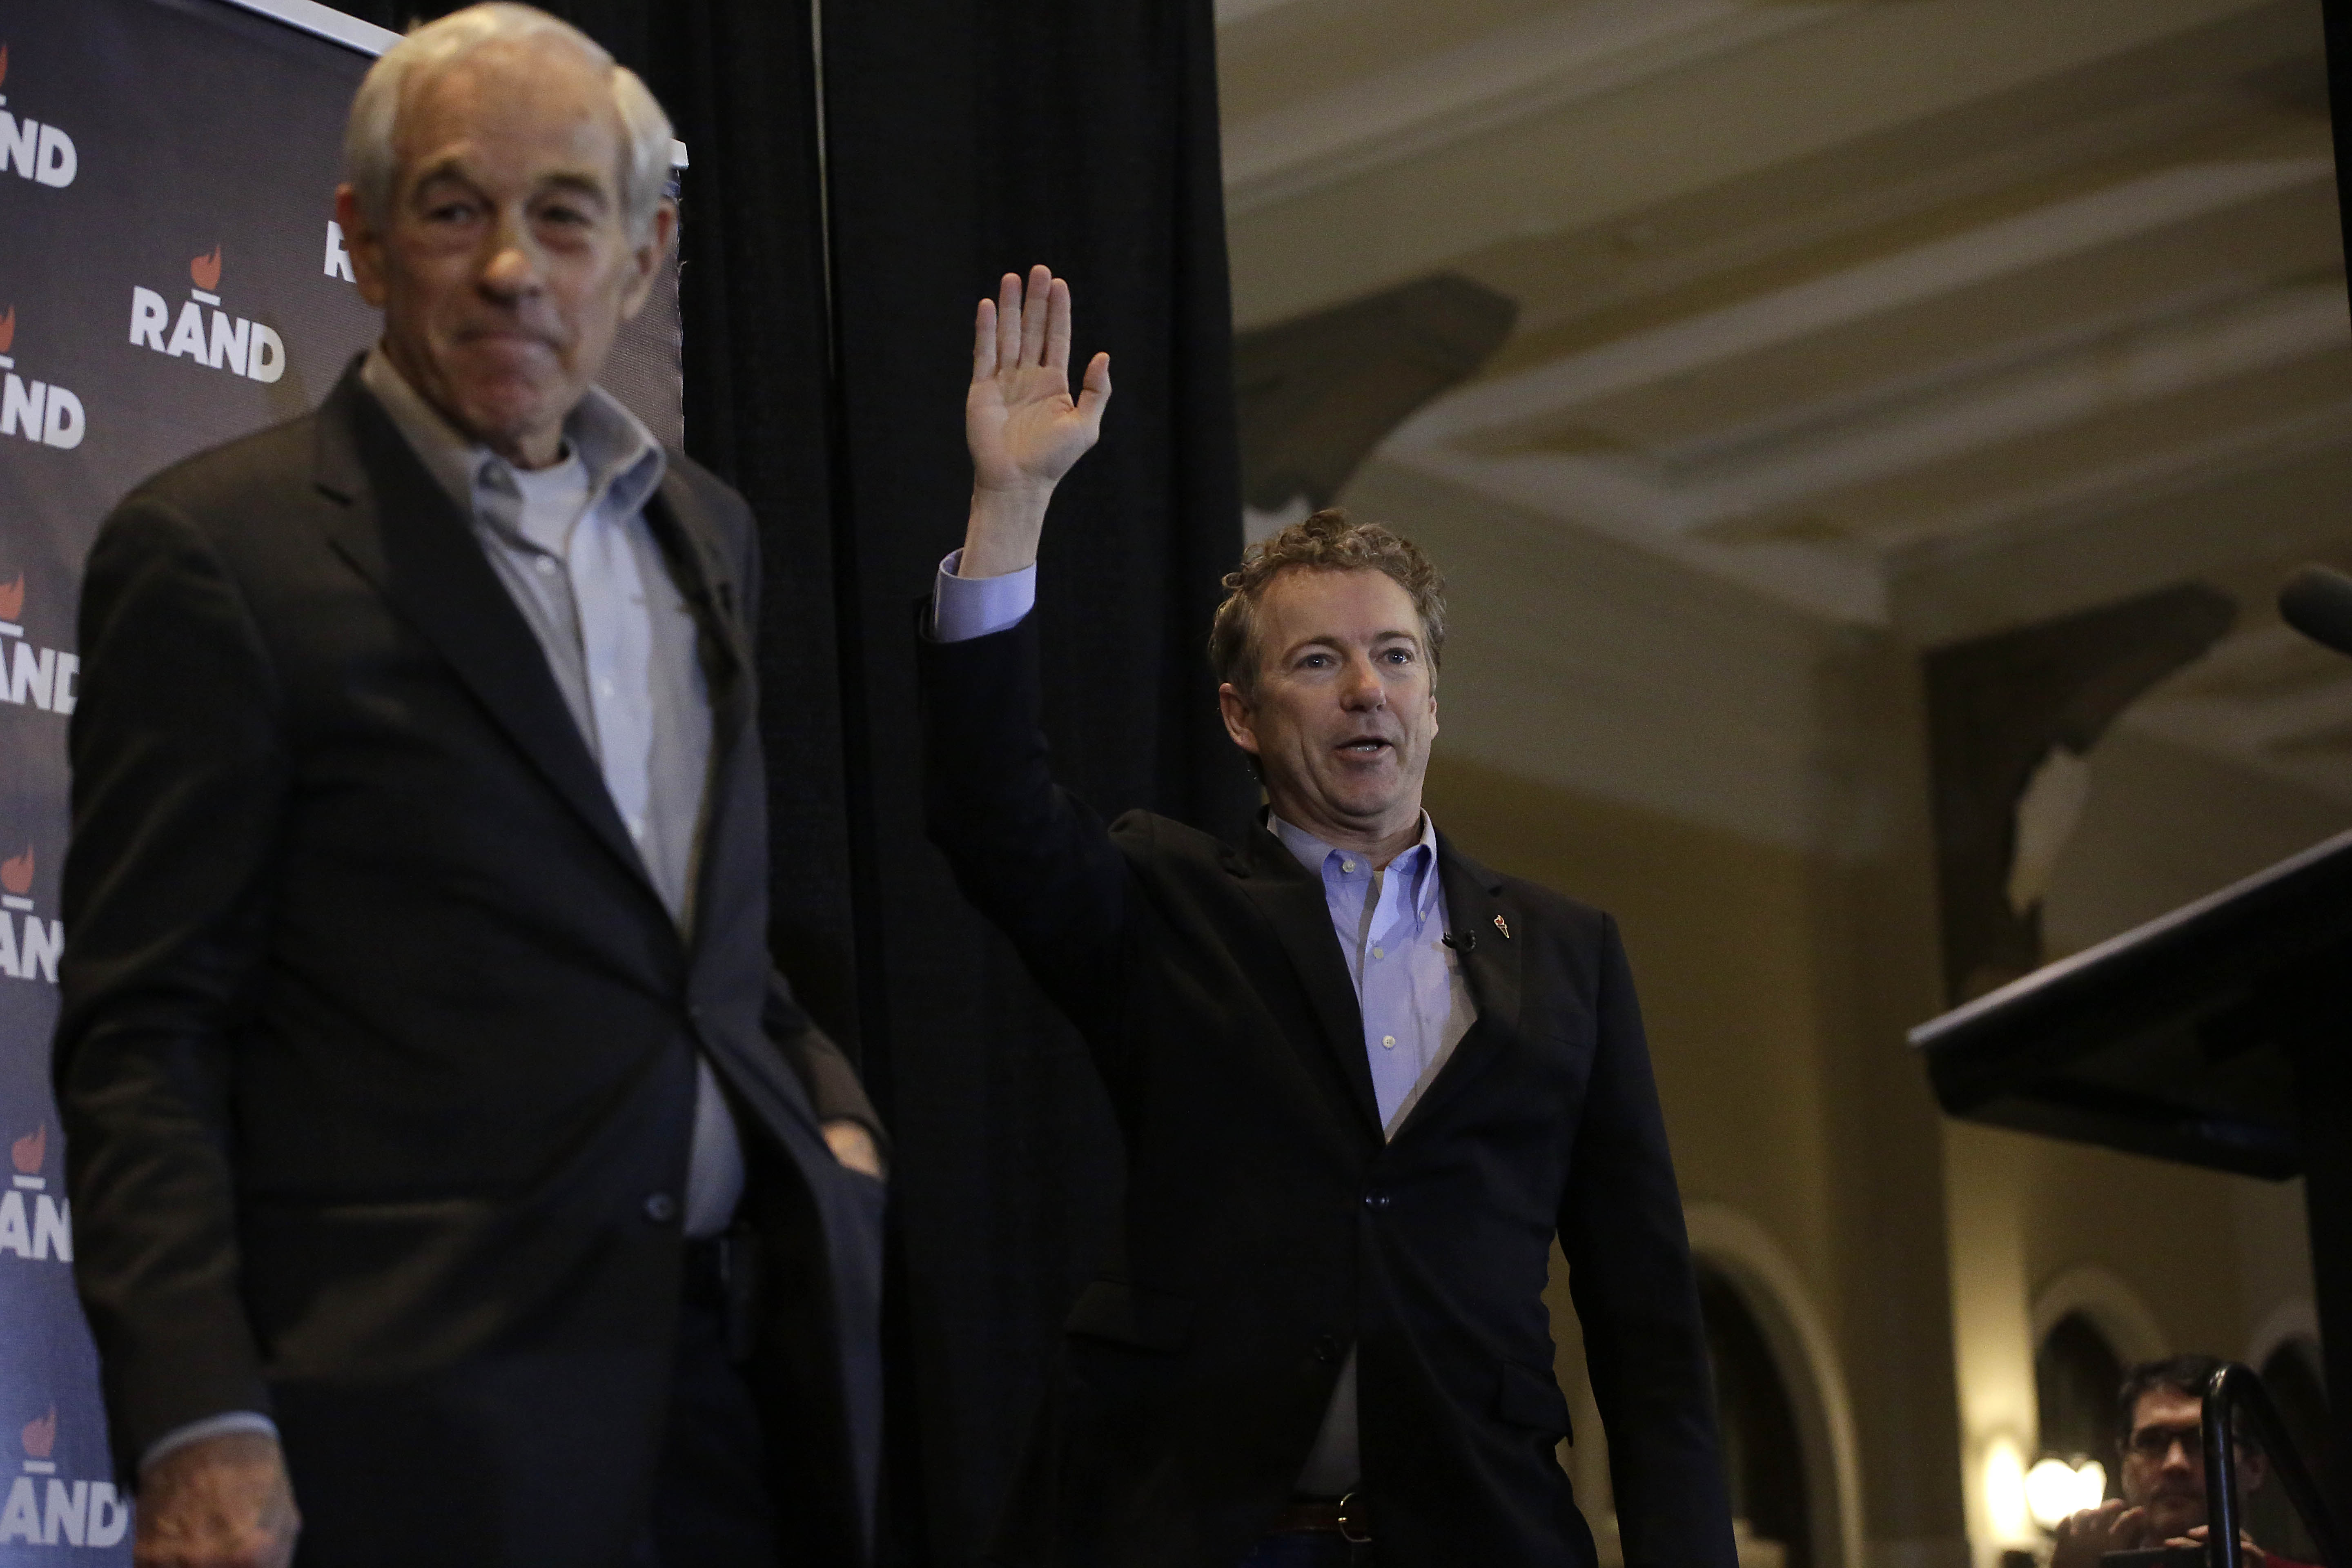 IOWA CITY, IA - JANUARY 31 : Republican presidential candidate, U.S. Sen. Rand Paul (R-KY) waves as he is introduced by his father Ron Paul, former U.S. Representative from Texas during a campaign event at the University of Iowa Memorial Union January 31, 2016 in Iowa City, Iowa. Paul who is seeking the nomination for the Republican Party is on the presidential campaign trail across Iowa ahead of the Iowa Caucus taking place Monday, a week before the New Hampshire Primaries. (Photo by Joshua Lott/Getty Images)